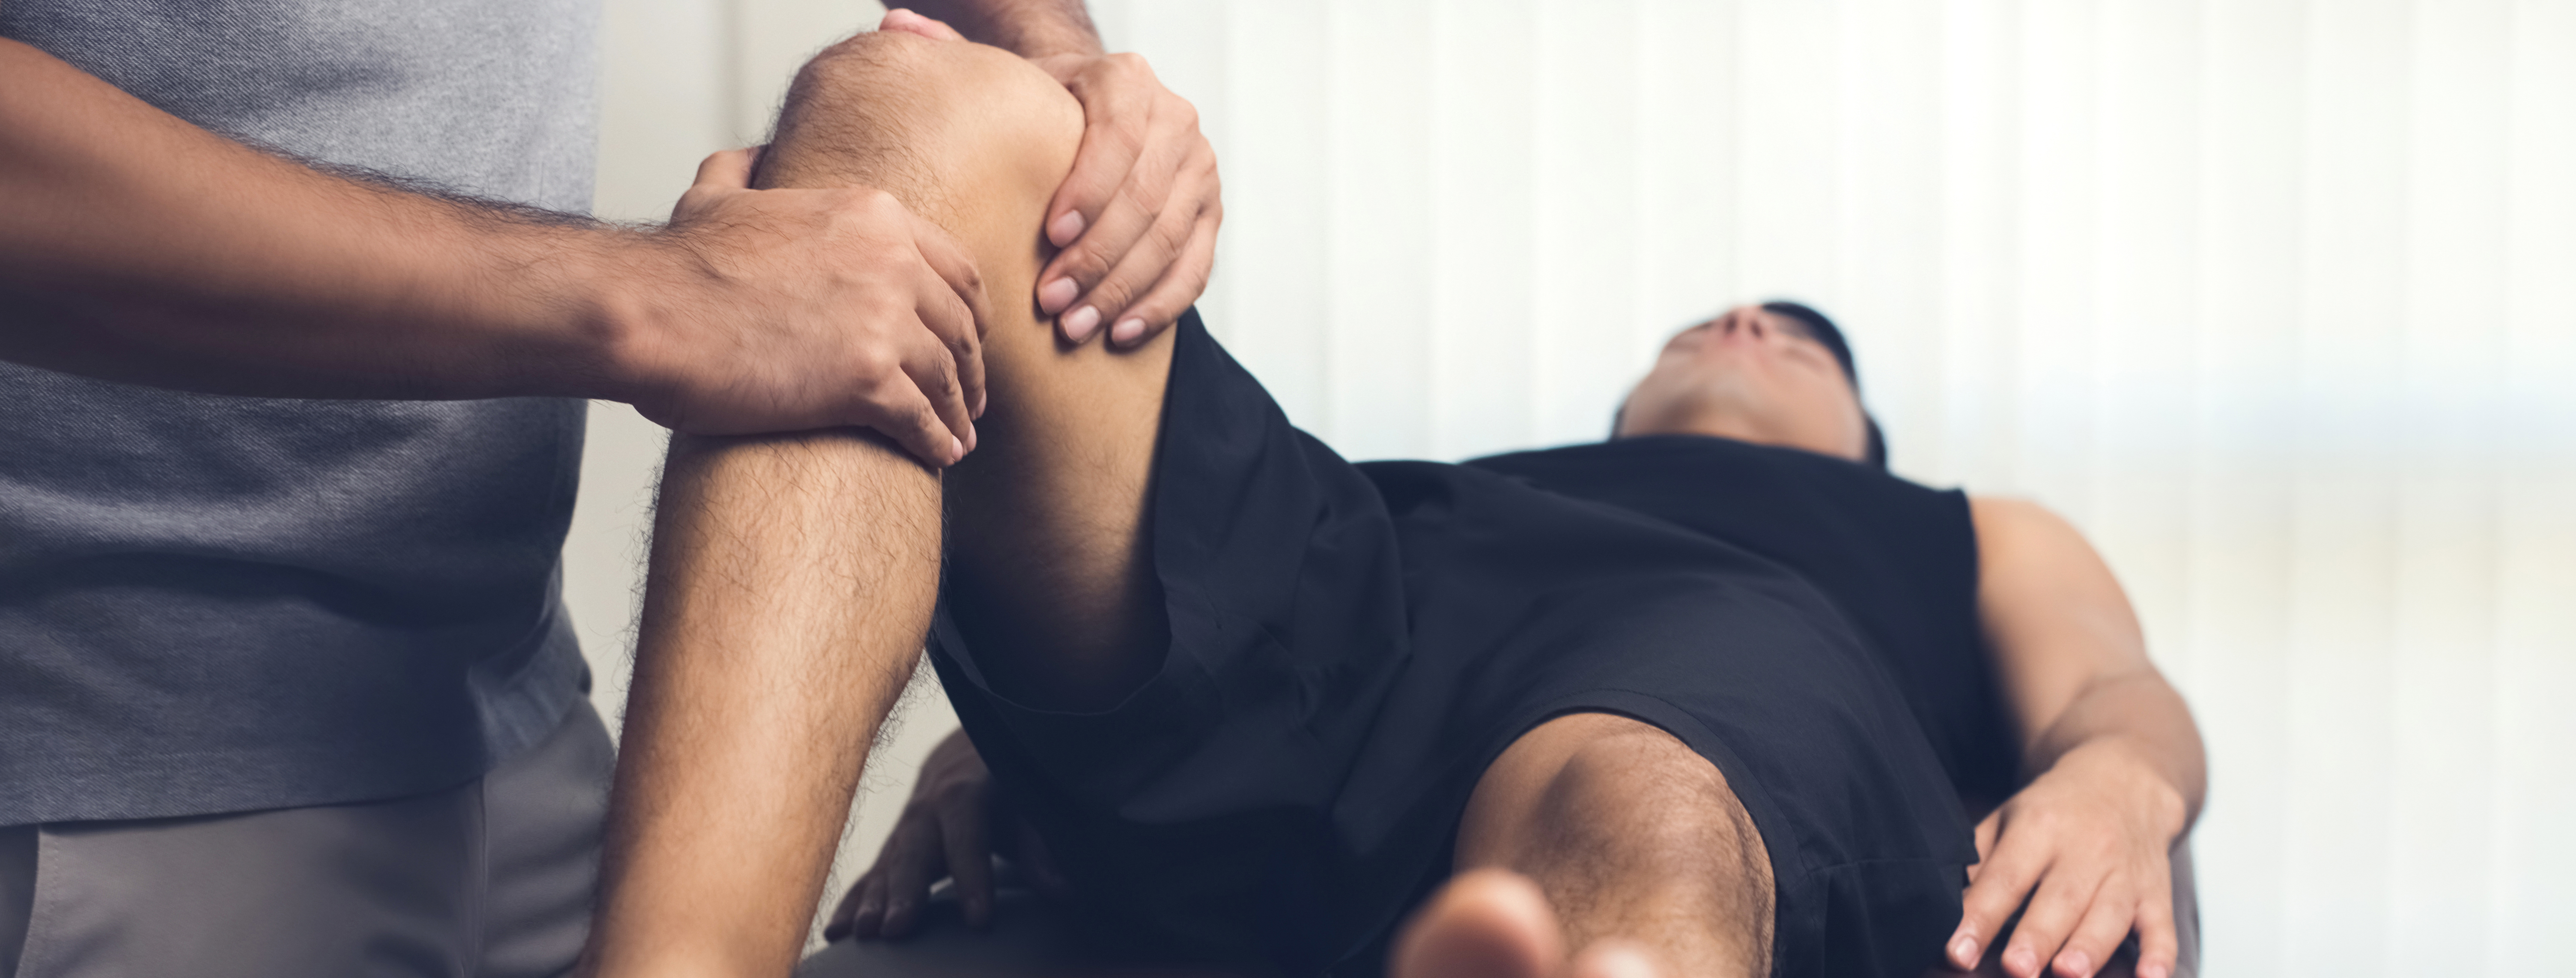 What does a career as a Remedial Sports Therapist look like?